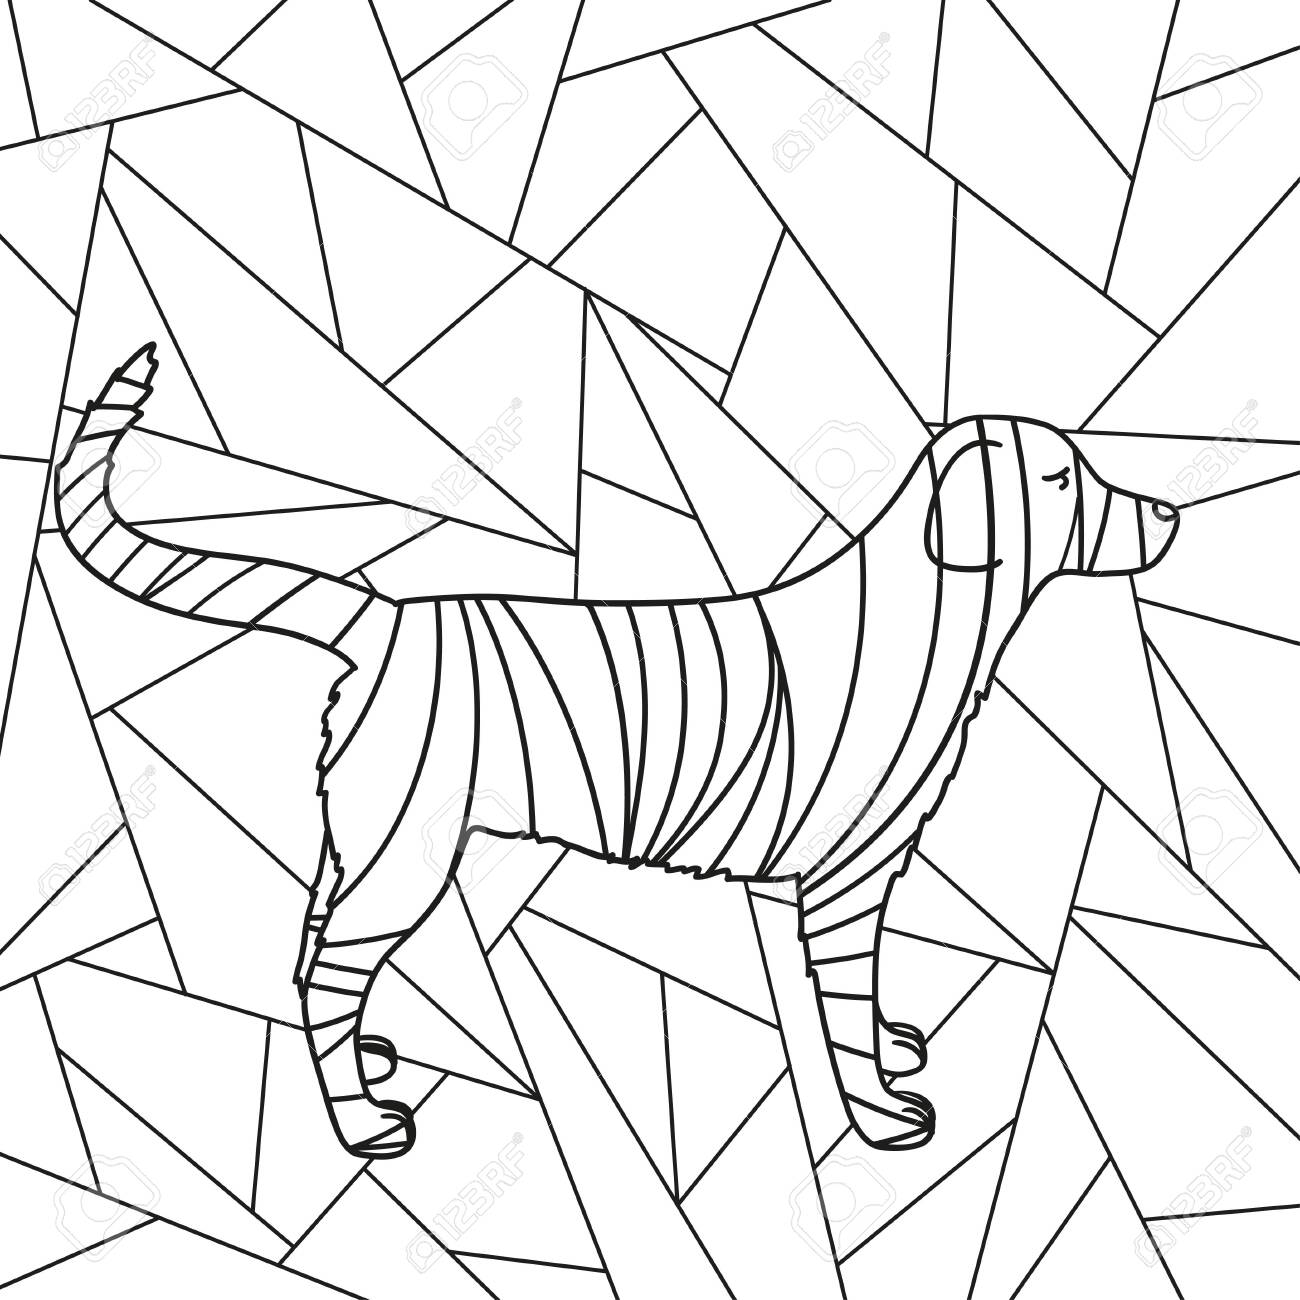 Abstract stained-glass window. Abstract dog. Design for spiritual relaxation for adults. Black and white illustration for coloring - 151885097